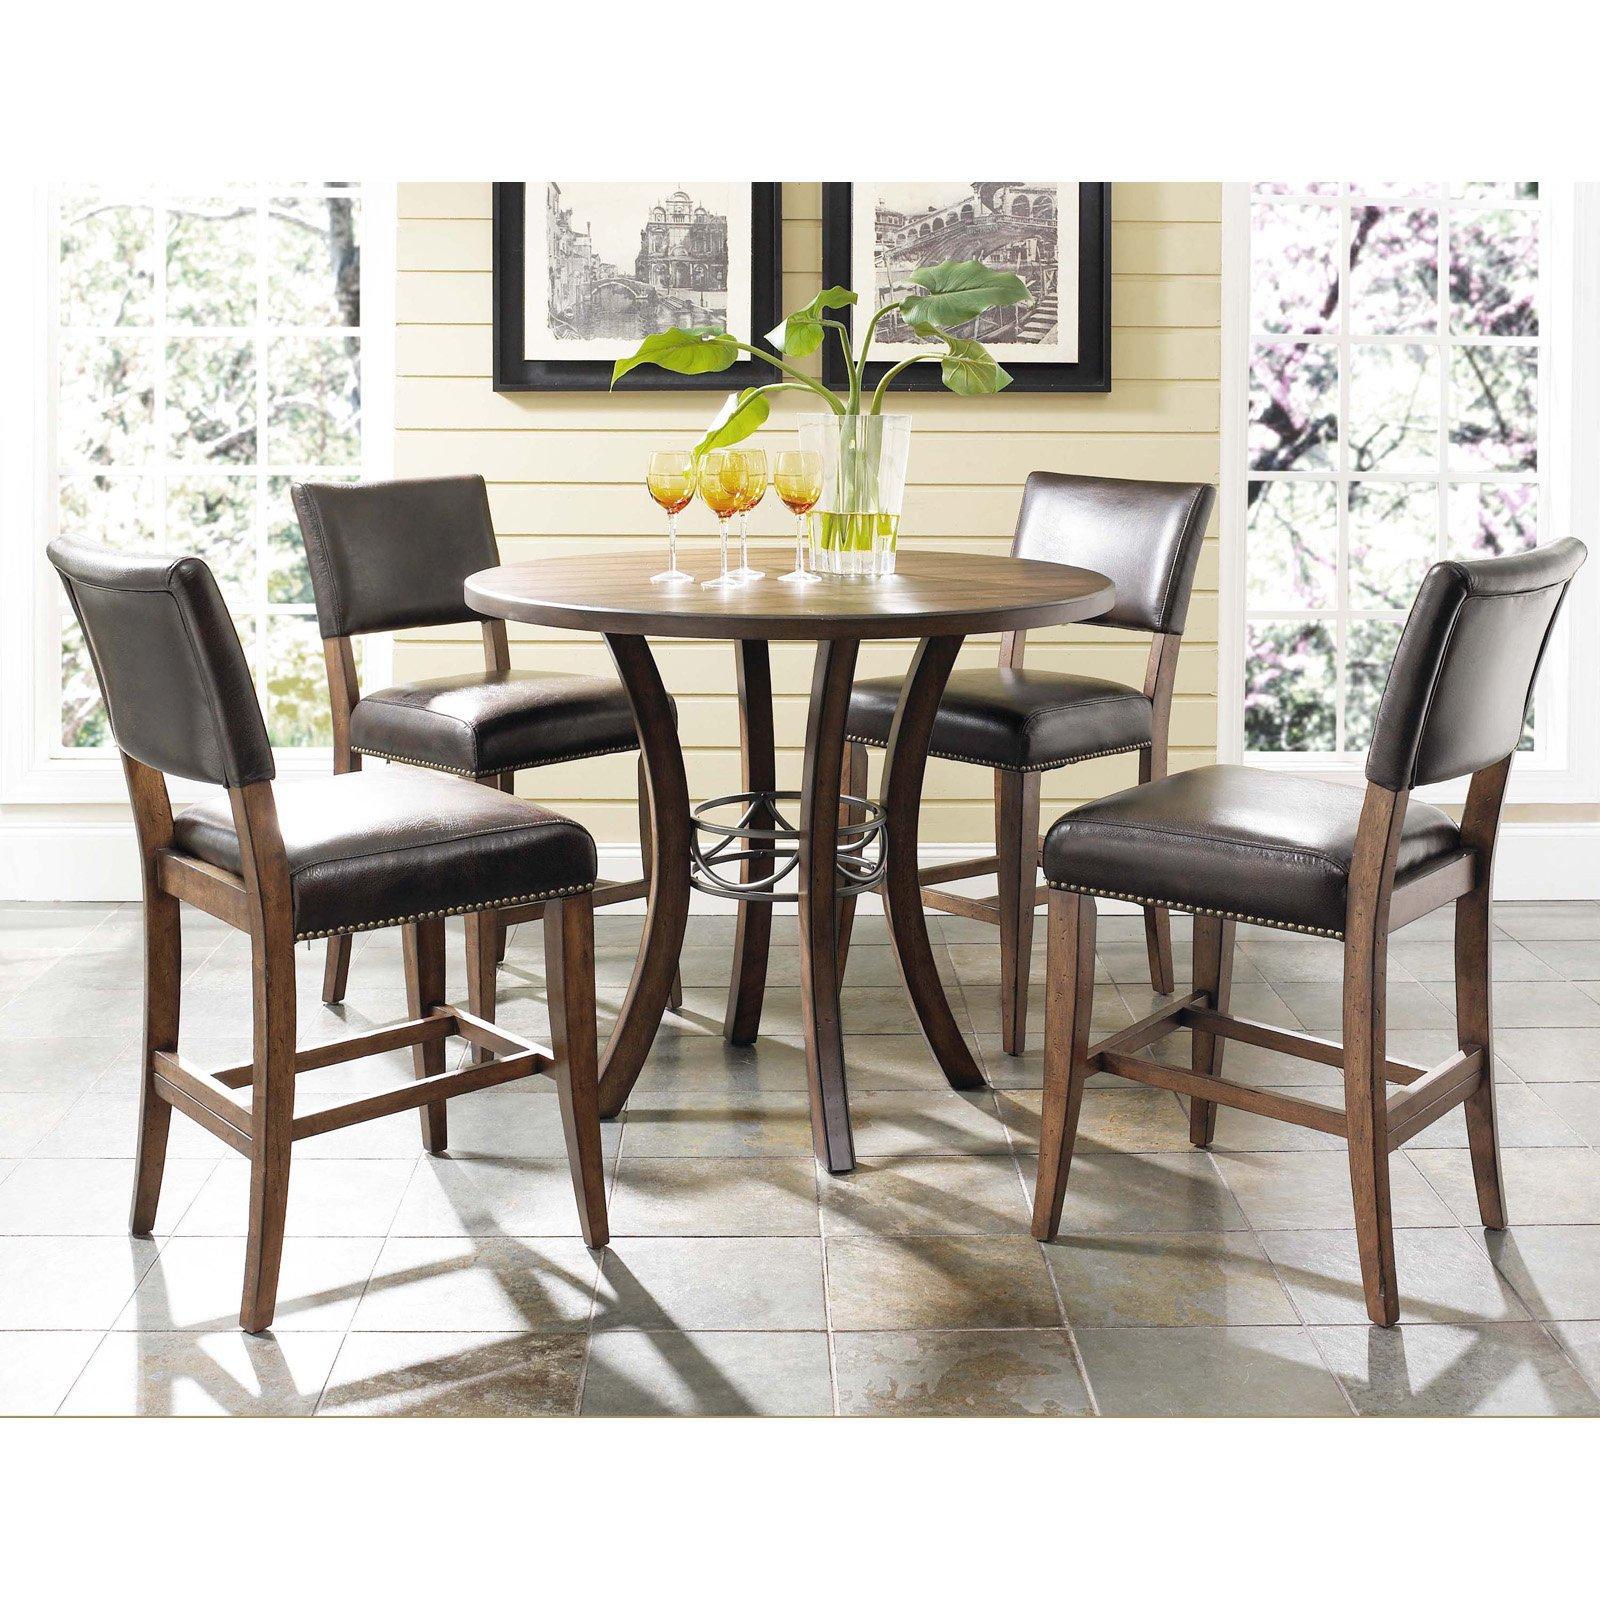 Hillsdale Cameron 5 Piece Counter Height Round Wood Dining Table Set